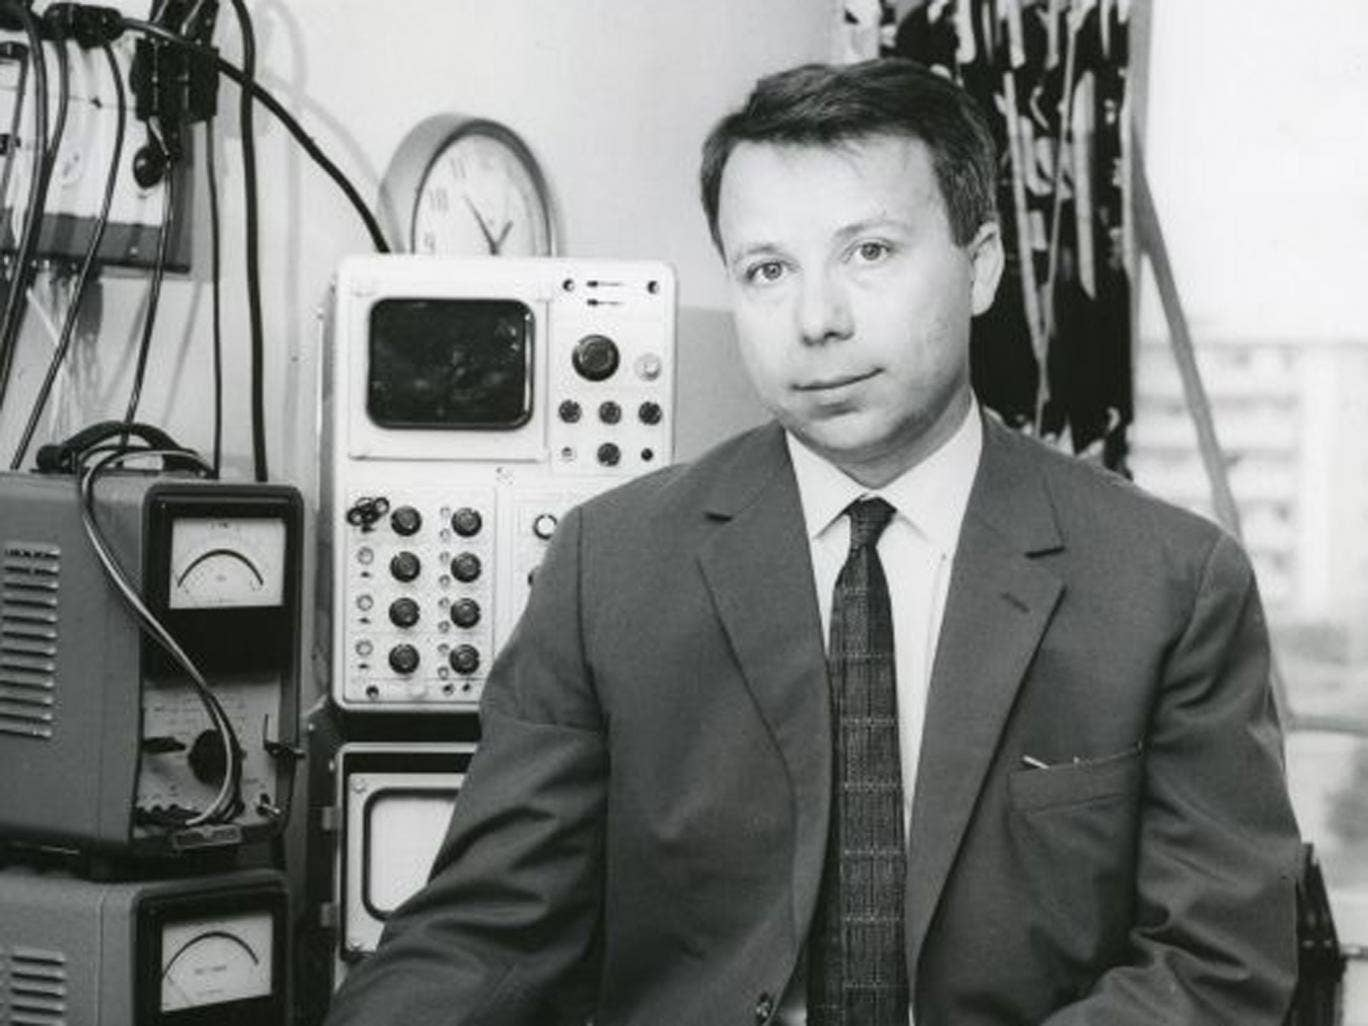 Stefan Kudelski, inventor of the first portable professional sound recorder, single-handed transformed the world of sound recording for radio, television and, most importantly, the film industry